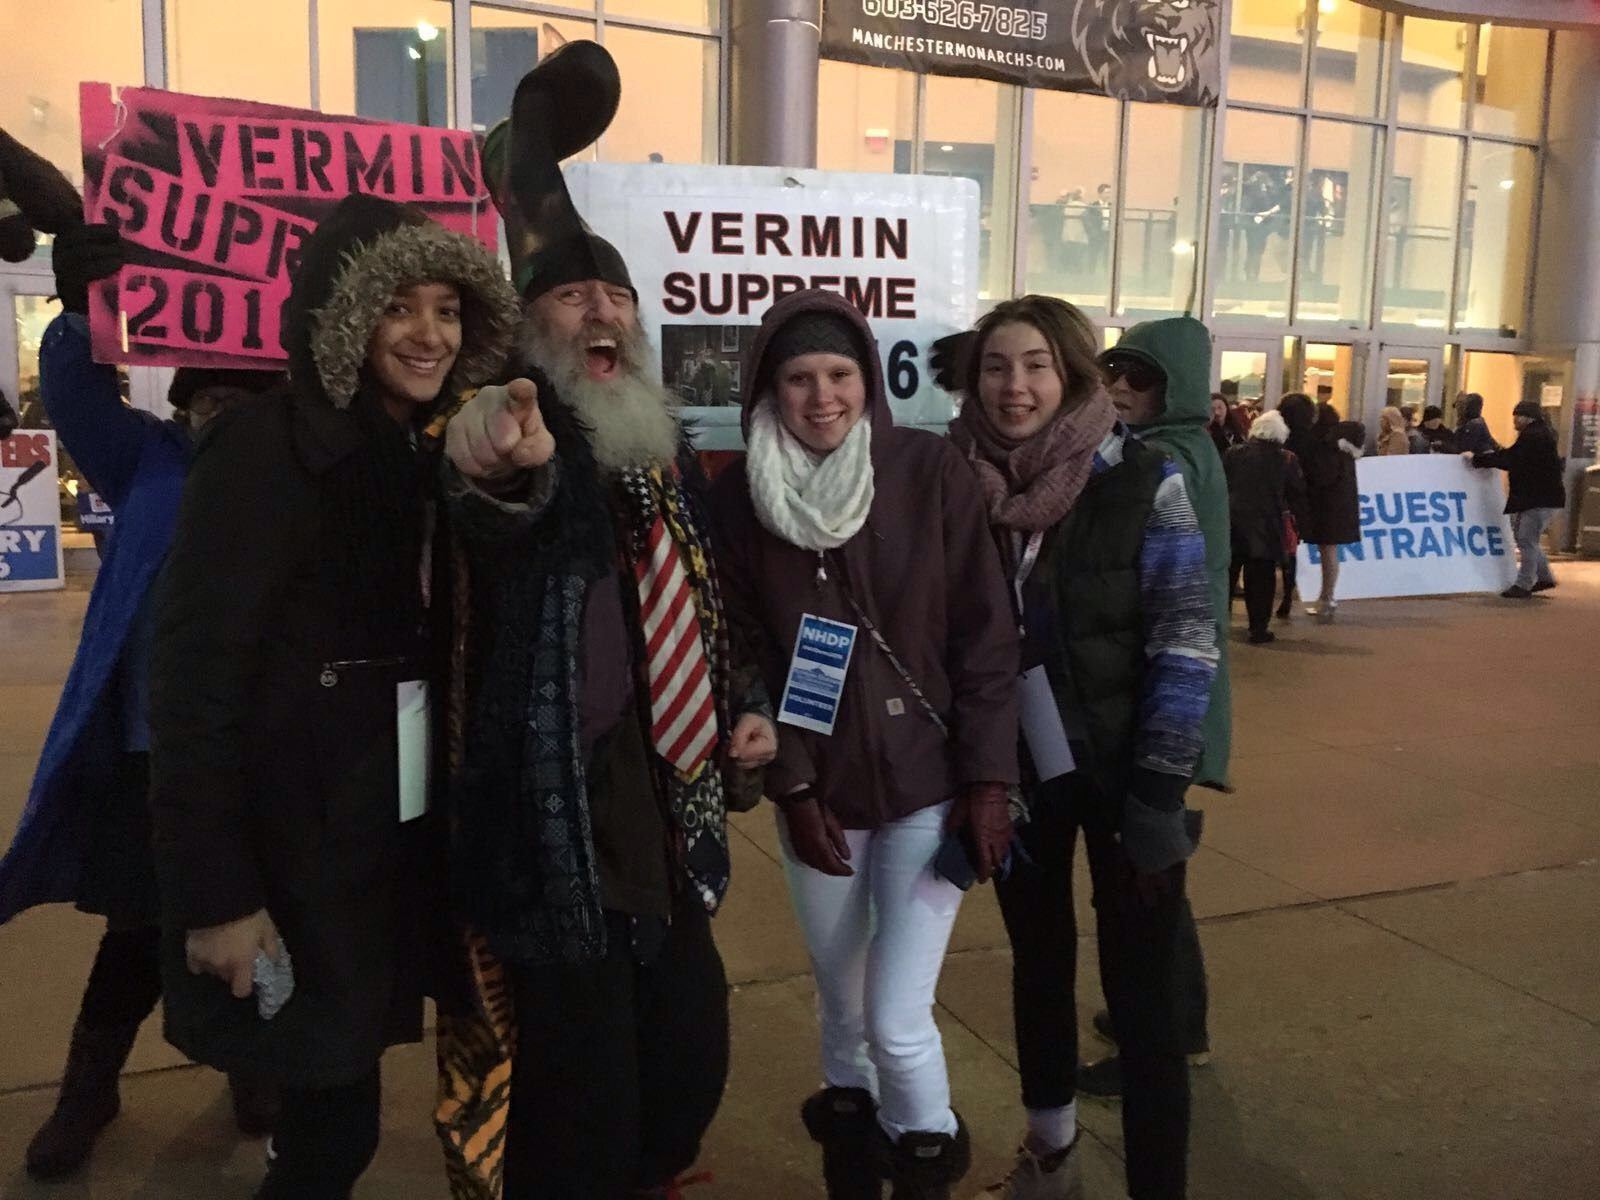 They even ran into perennial candidate Vermin Supreme!